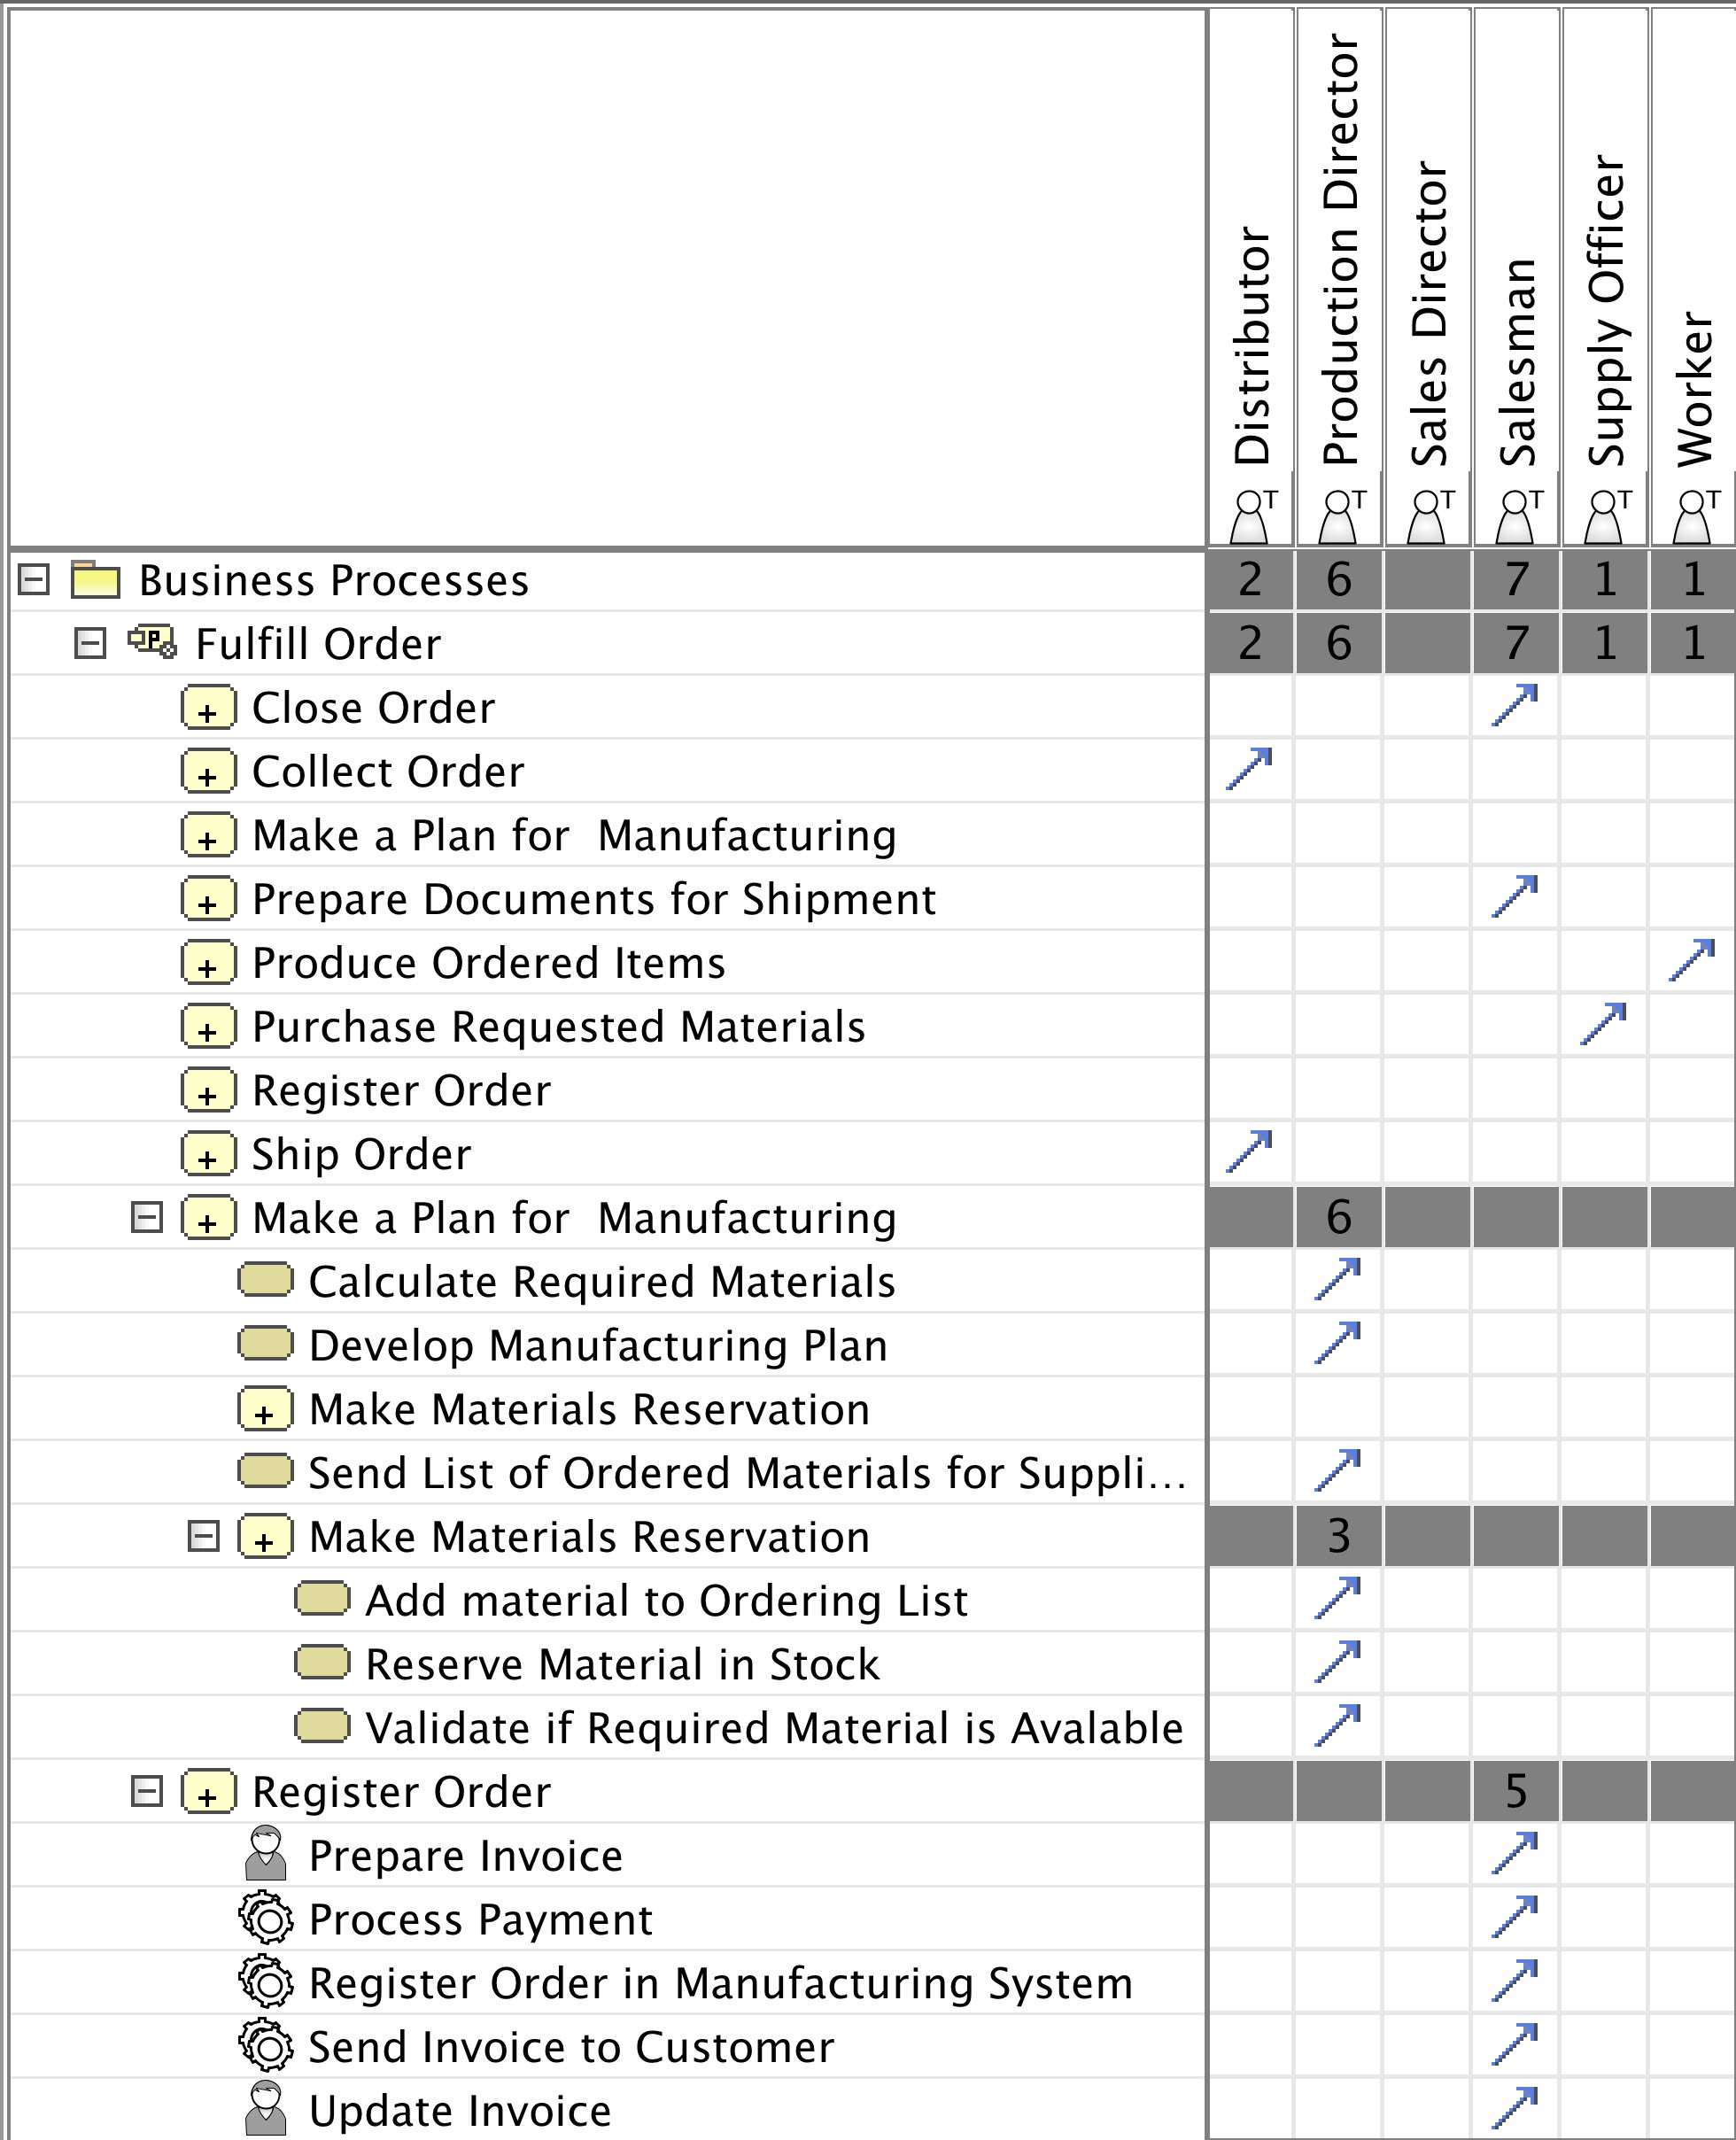 Figure 6. Editable matrix showing resource involvement in processes